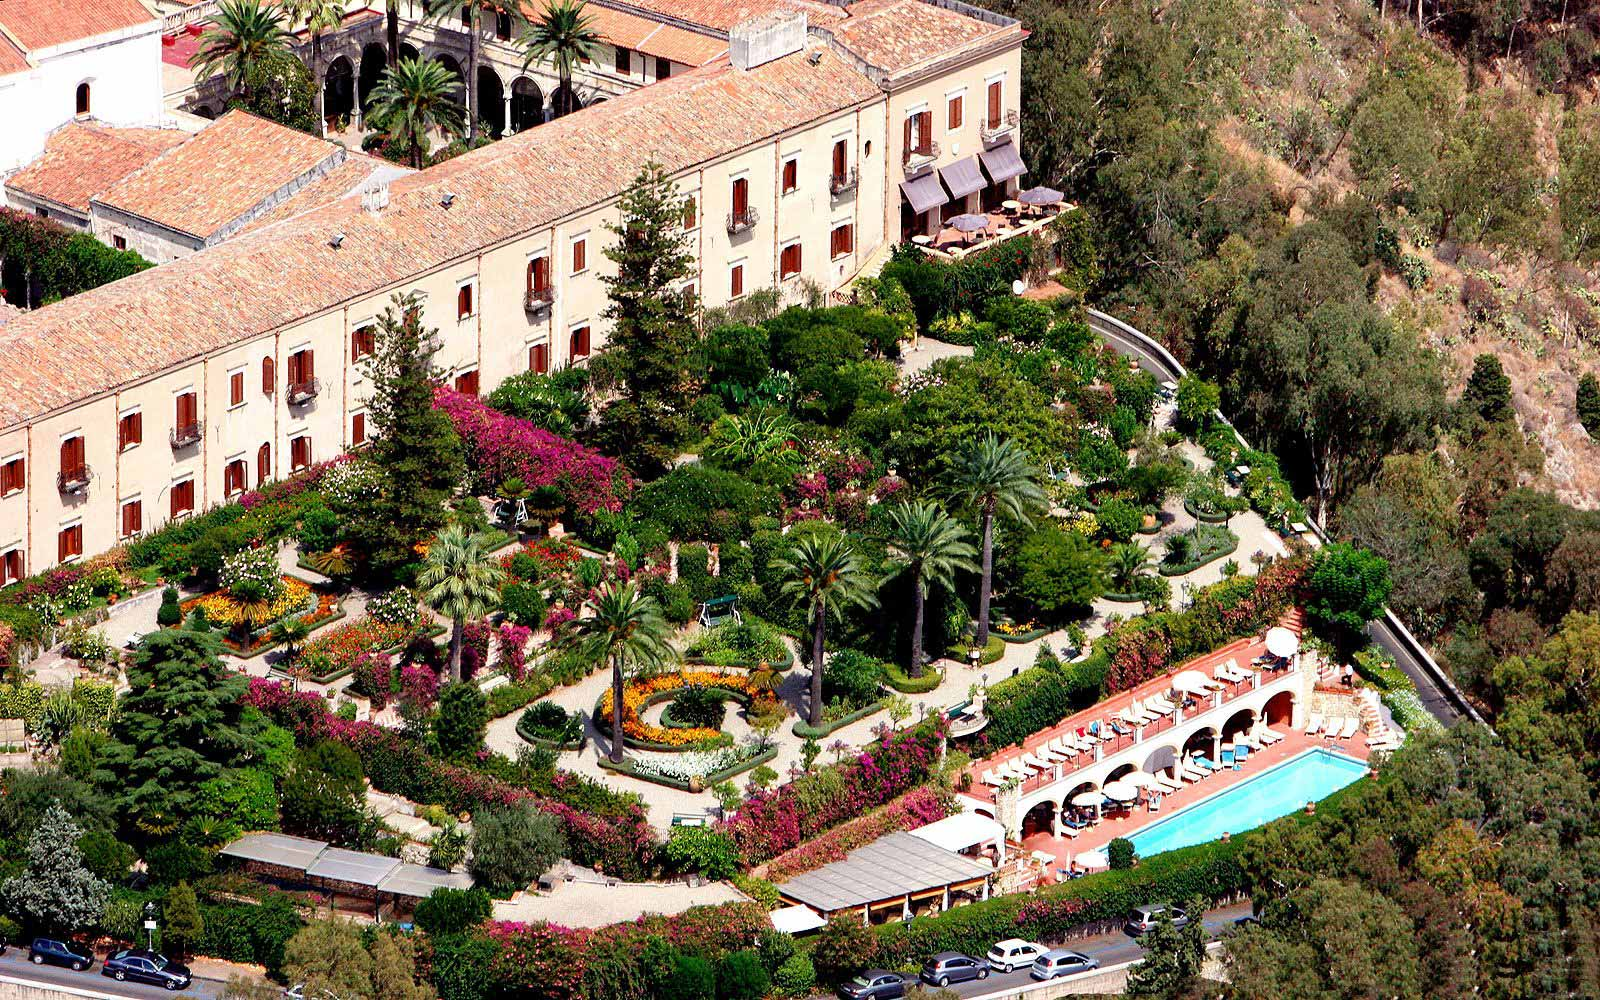 Ariel view of the San Domenico Palace Hotel